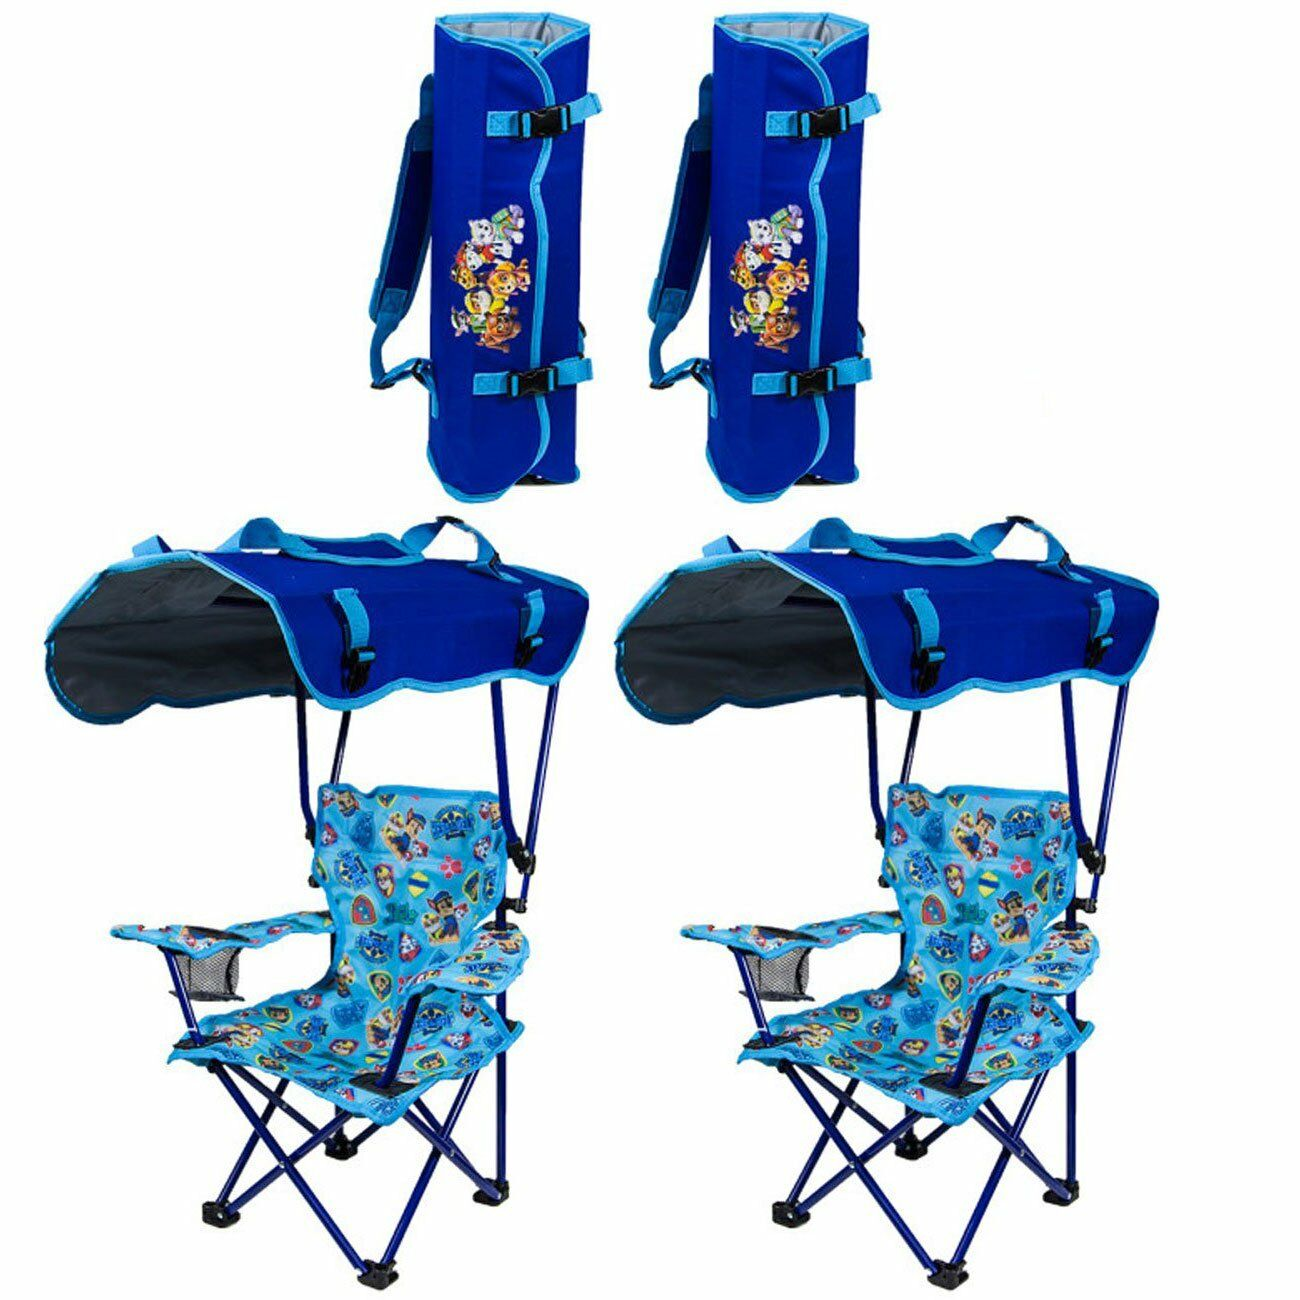 Stupendous Kelsyus Kids Paw Patrol Portable Folding Kids Canopy Lounge Chair 2 Pack Camellatalisay Diy Chair Ideas Camellatalisaycom